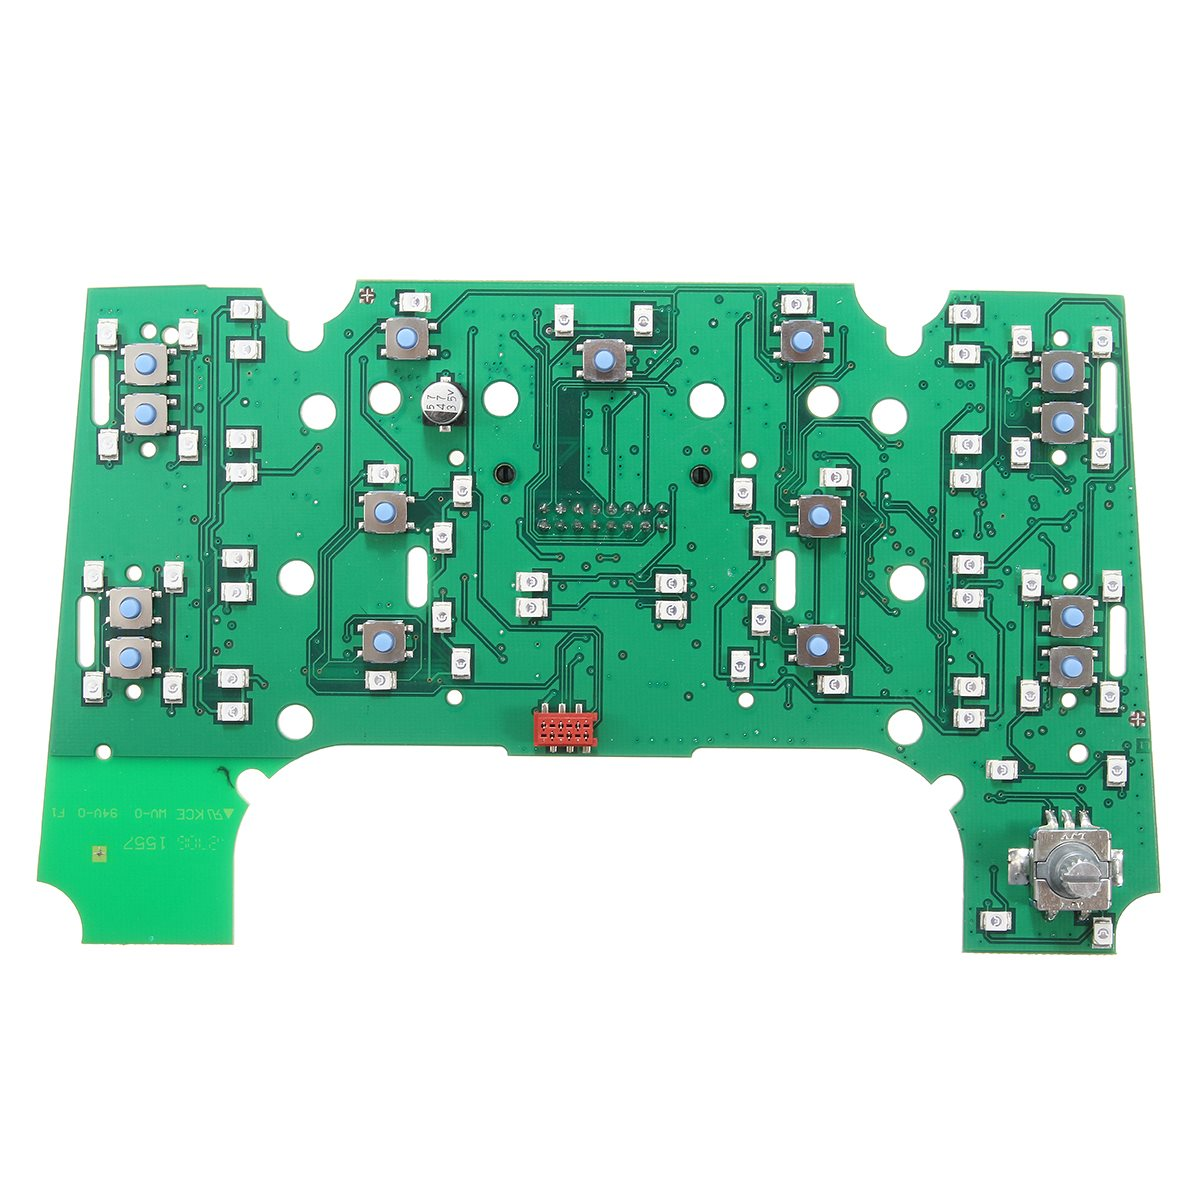 New 2g Mmi Multimedia Interface Control Panel Circuit Board For On Vintage Cigar Box Audi A8 A8l S8 2003 2004 2005 2006 Pvc And Metal